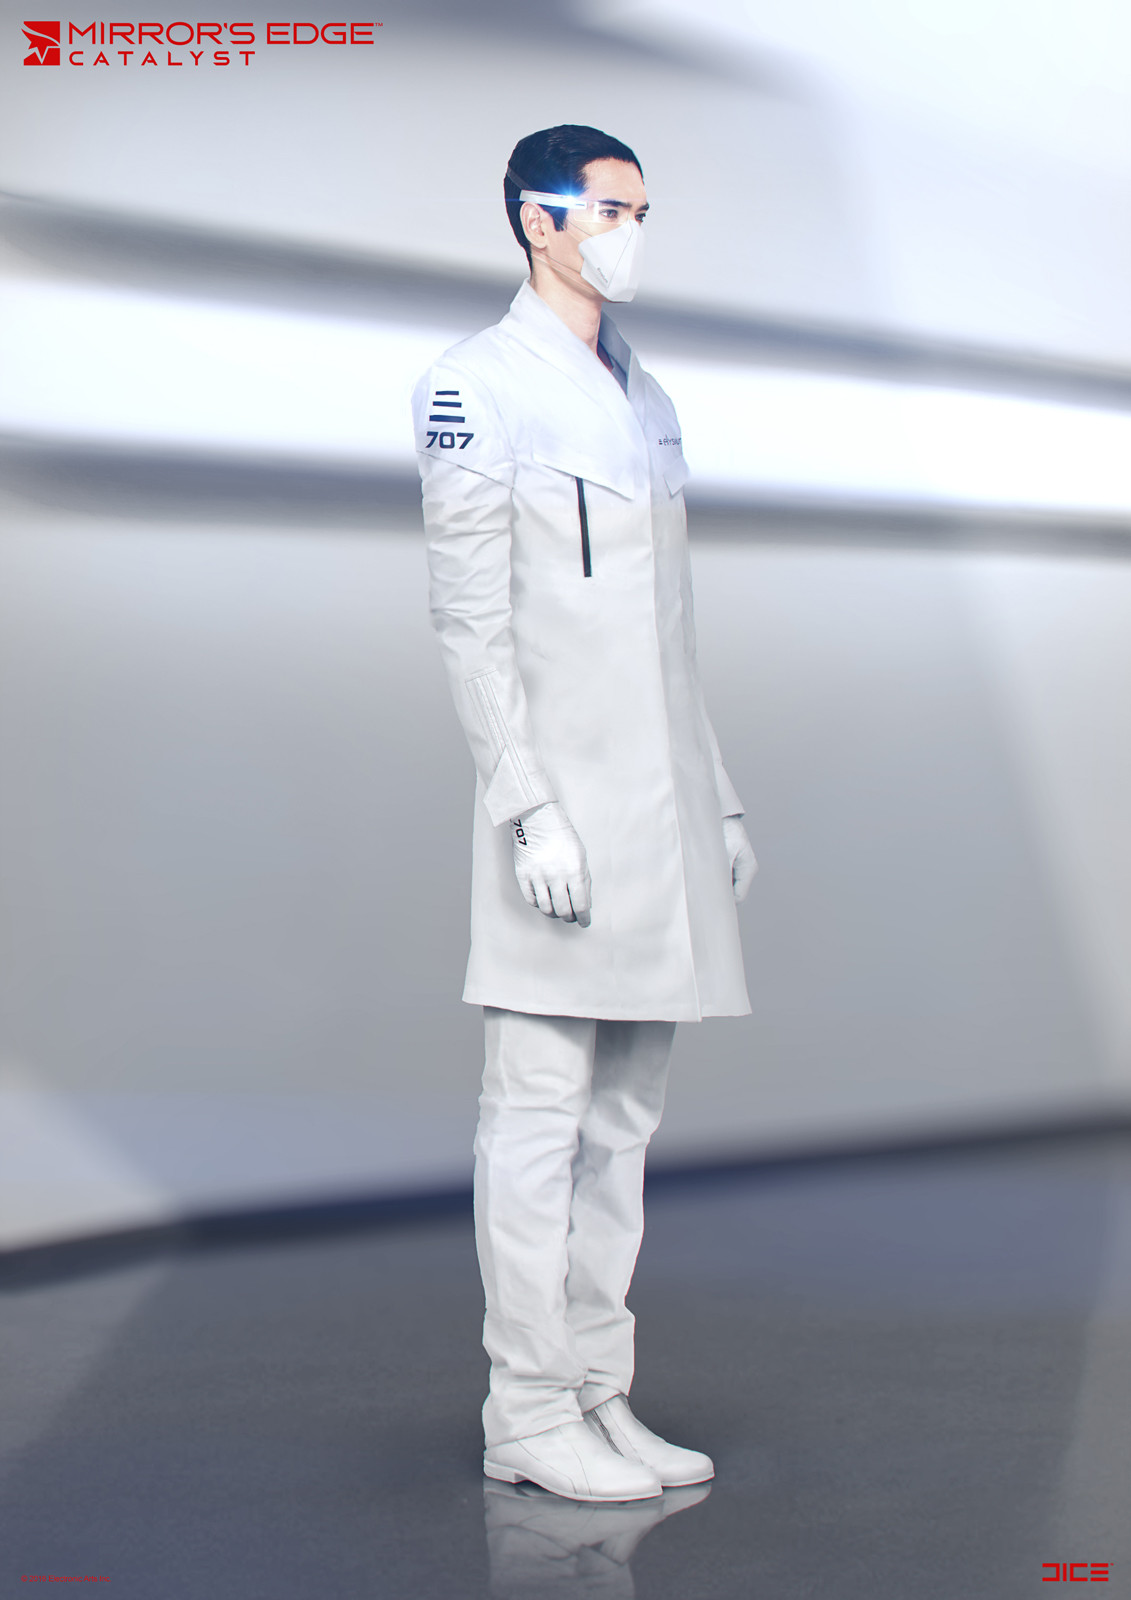 Elysium Scientist - Concept Art